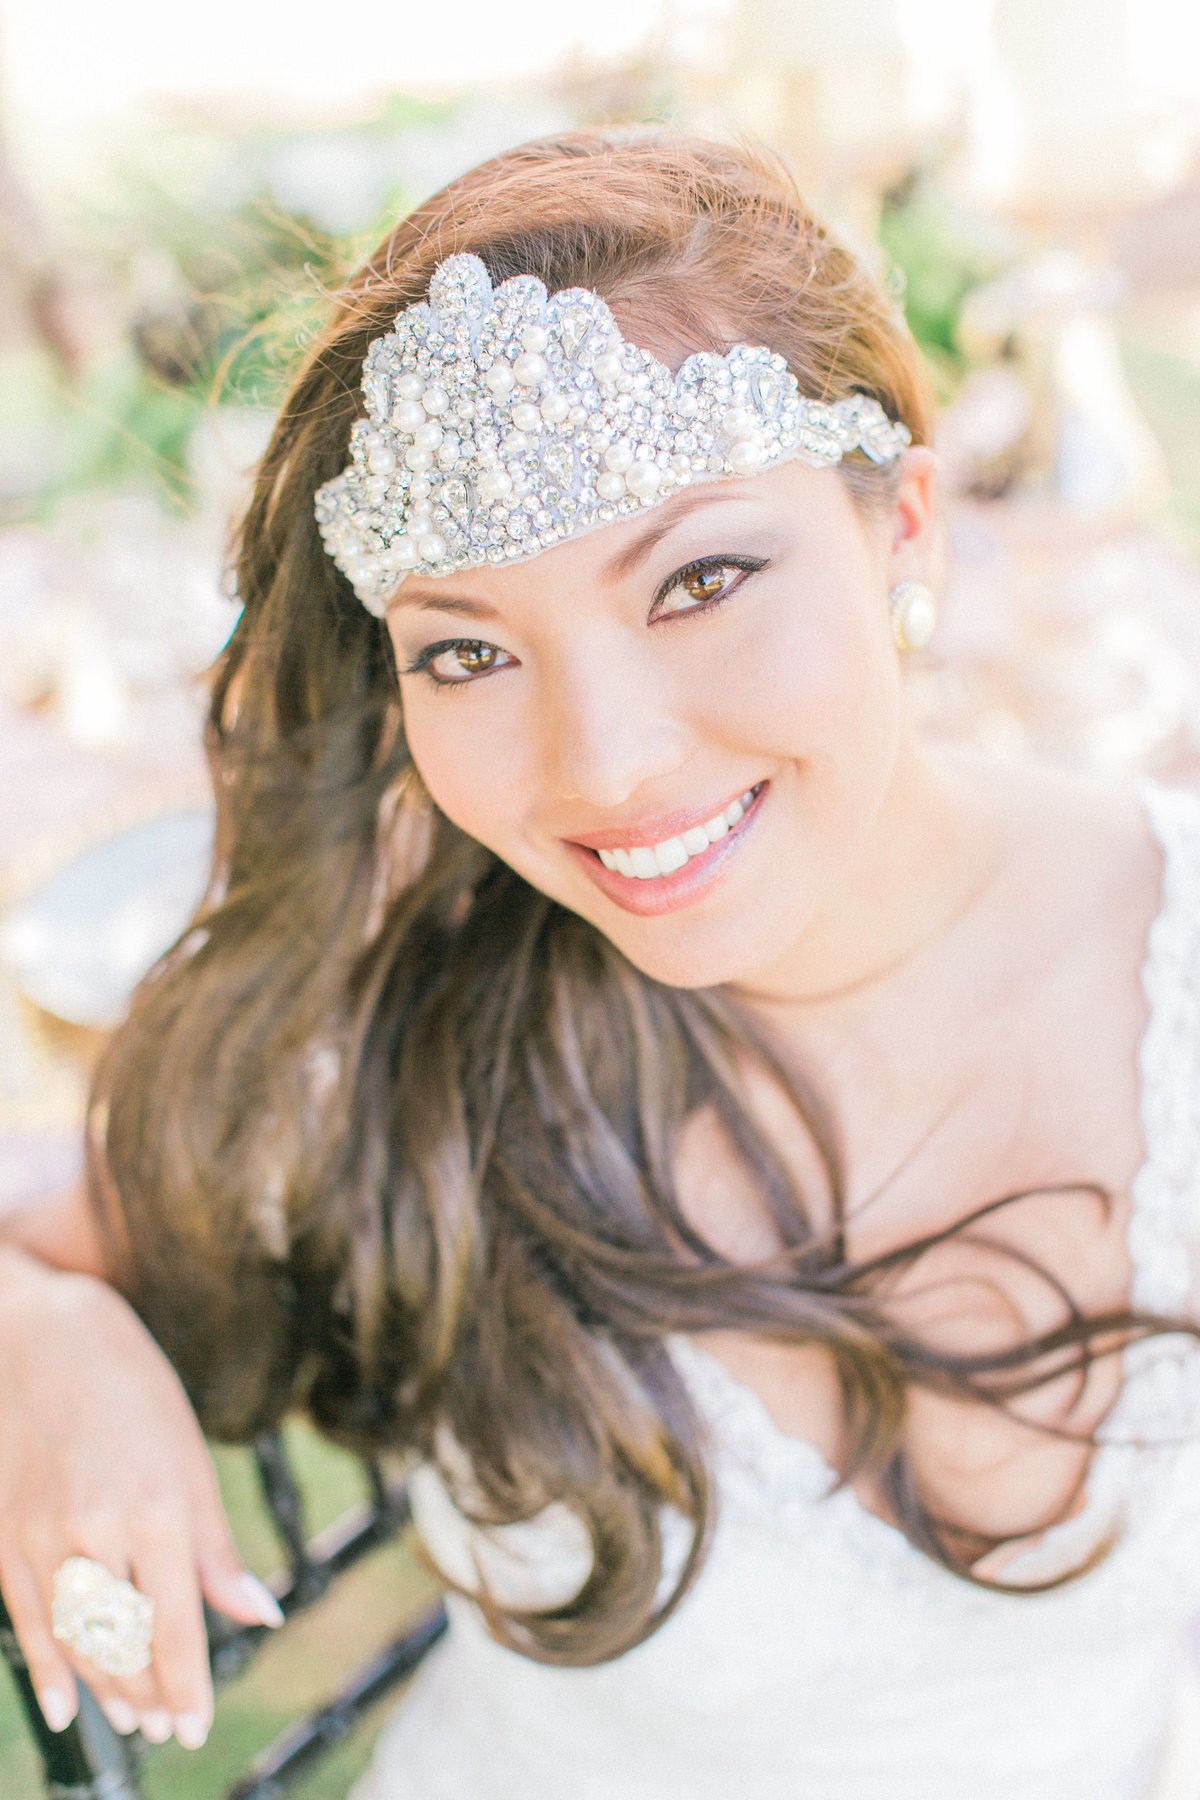 Erica Elizabeth Designs Wedding Head Ornaments